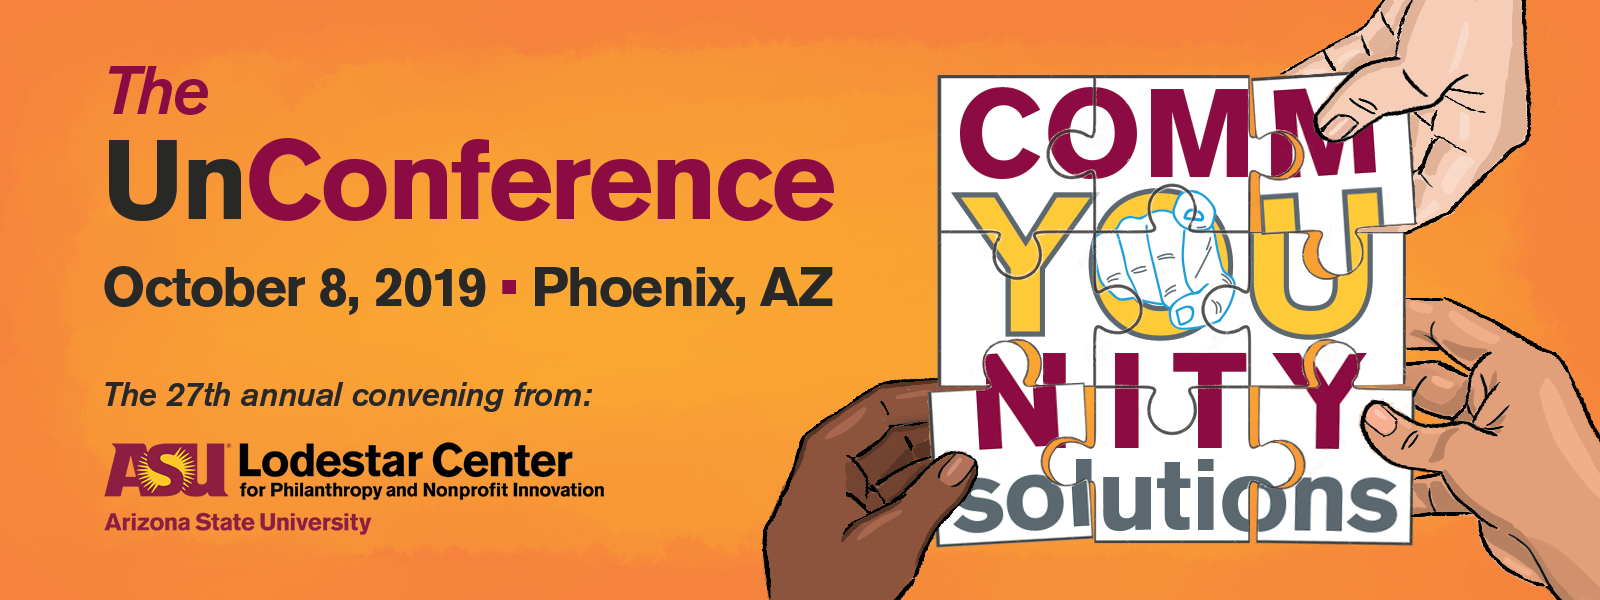 The UnConference 2019